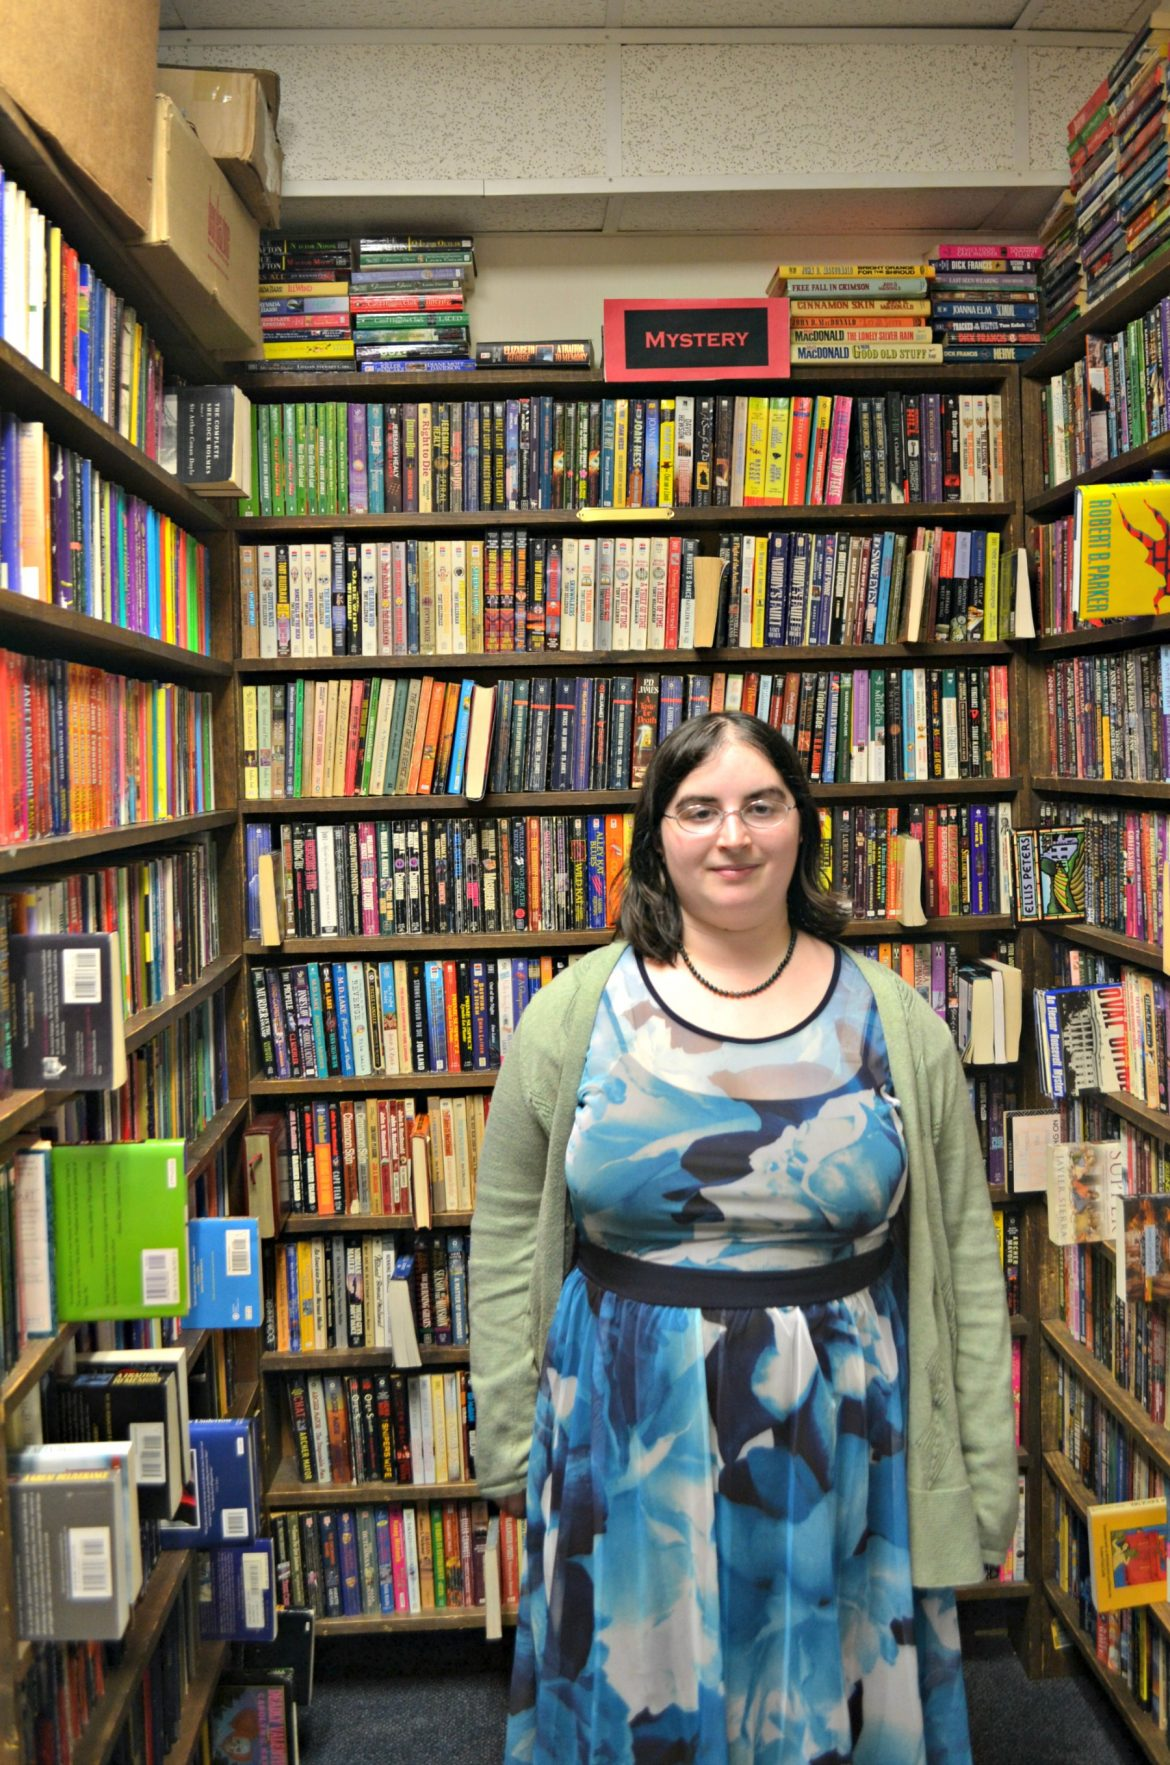 Sarah Slocum, of Sutton, found a need for an LGBT book club closer to home.